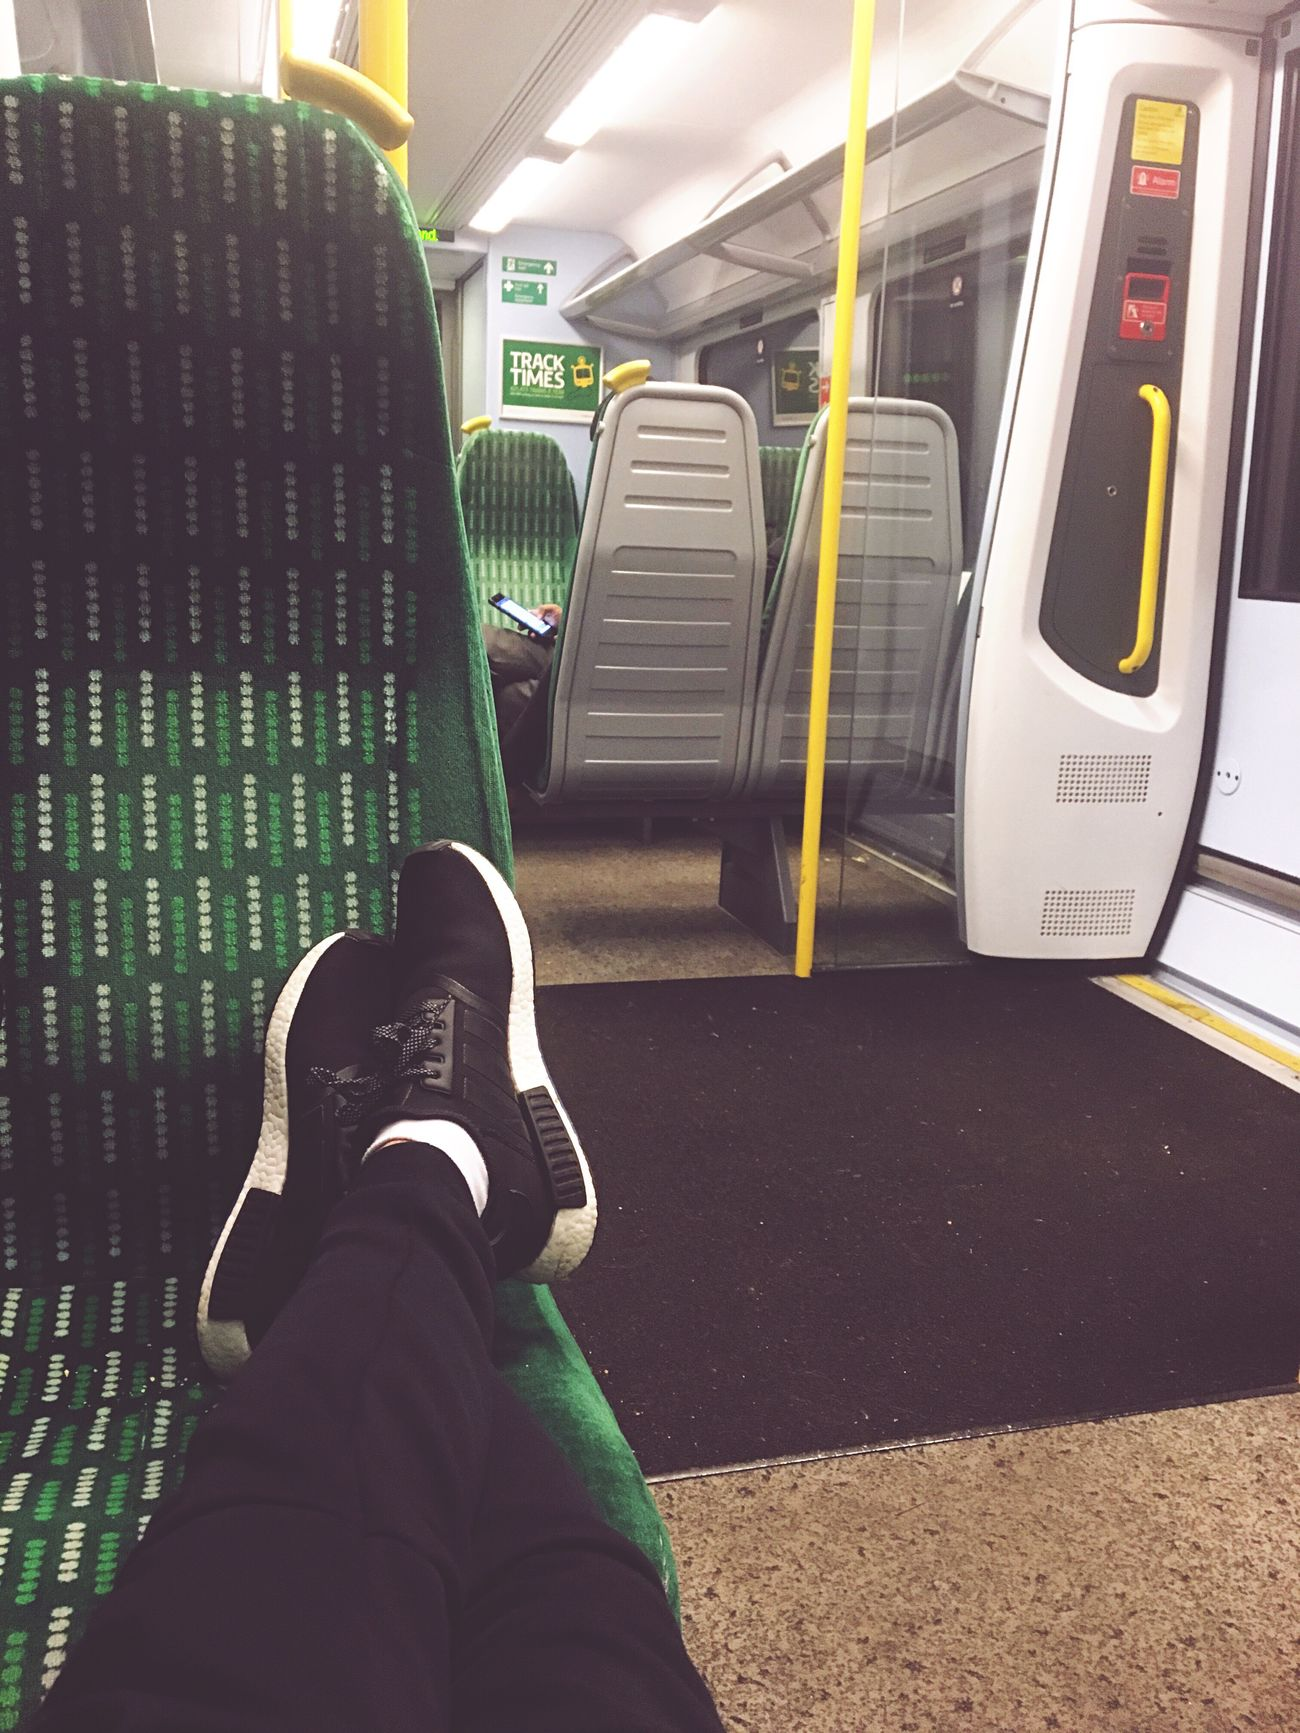 Londonmidland Train Station LondonTransport Addidas Yeezy Outfit